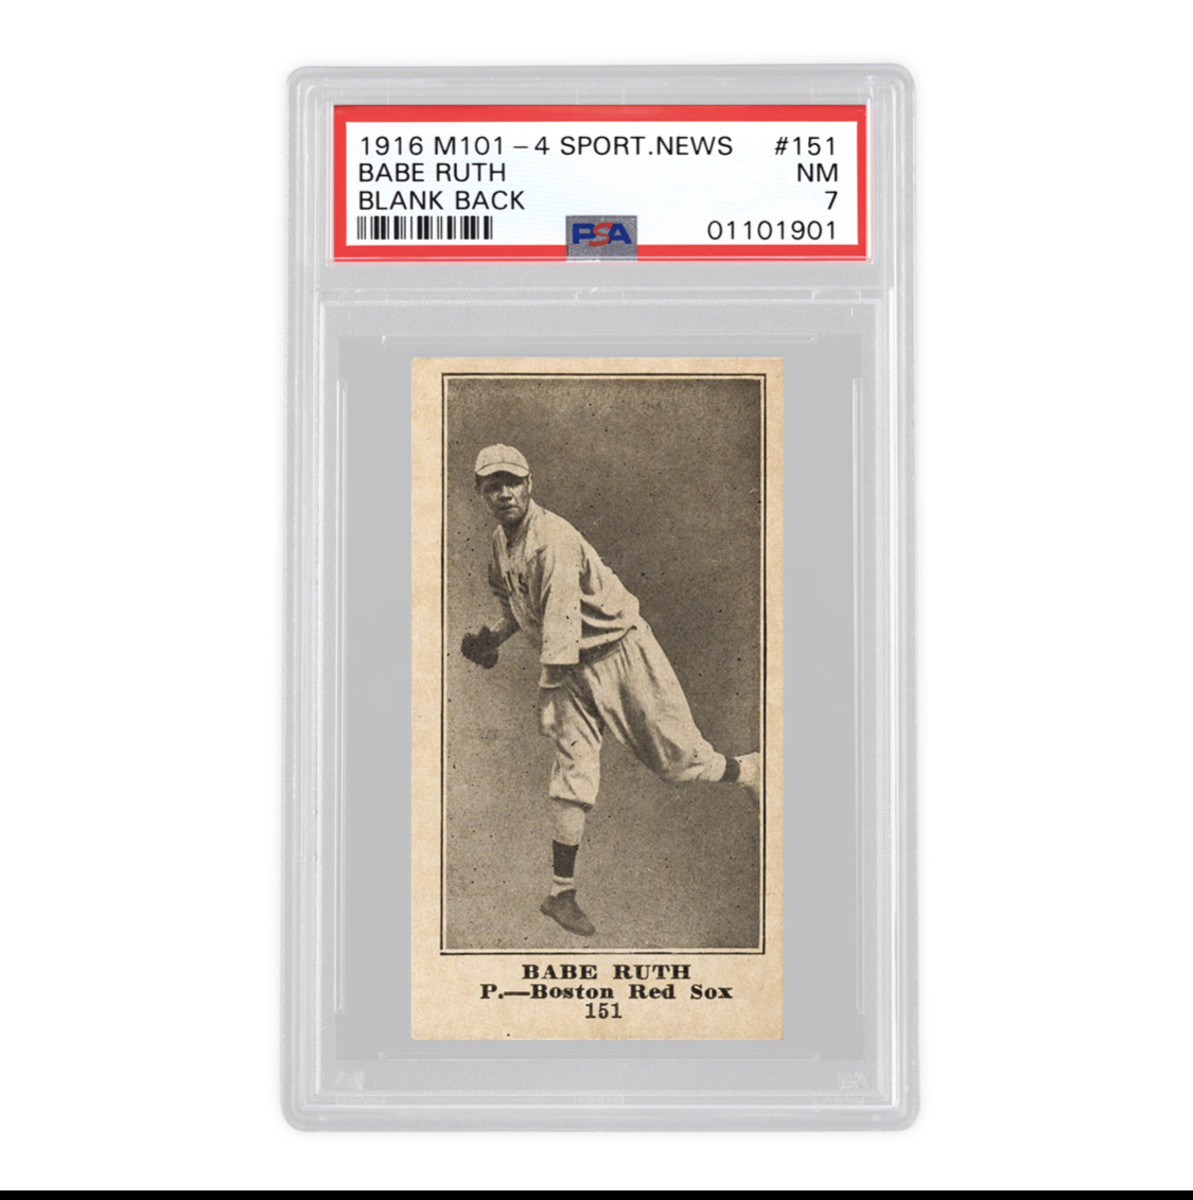 1916 M101-4 Sporting News Babe Ruth card available to investors at Collectable.